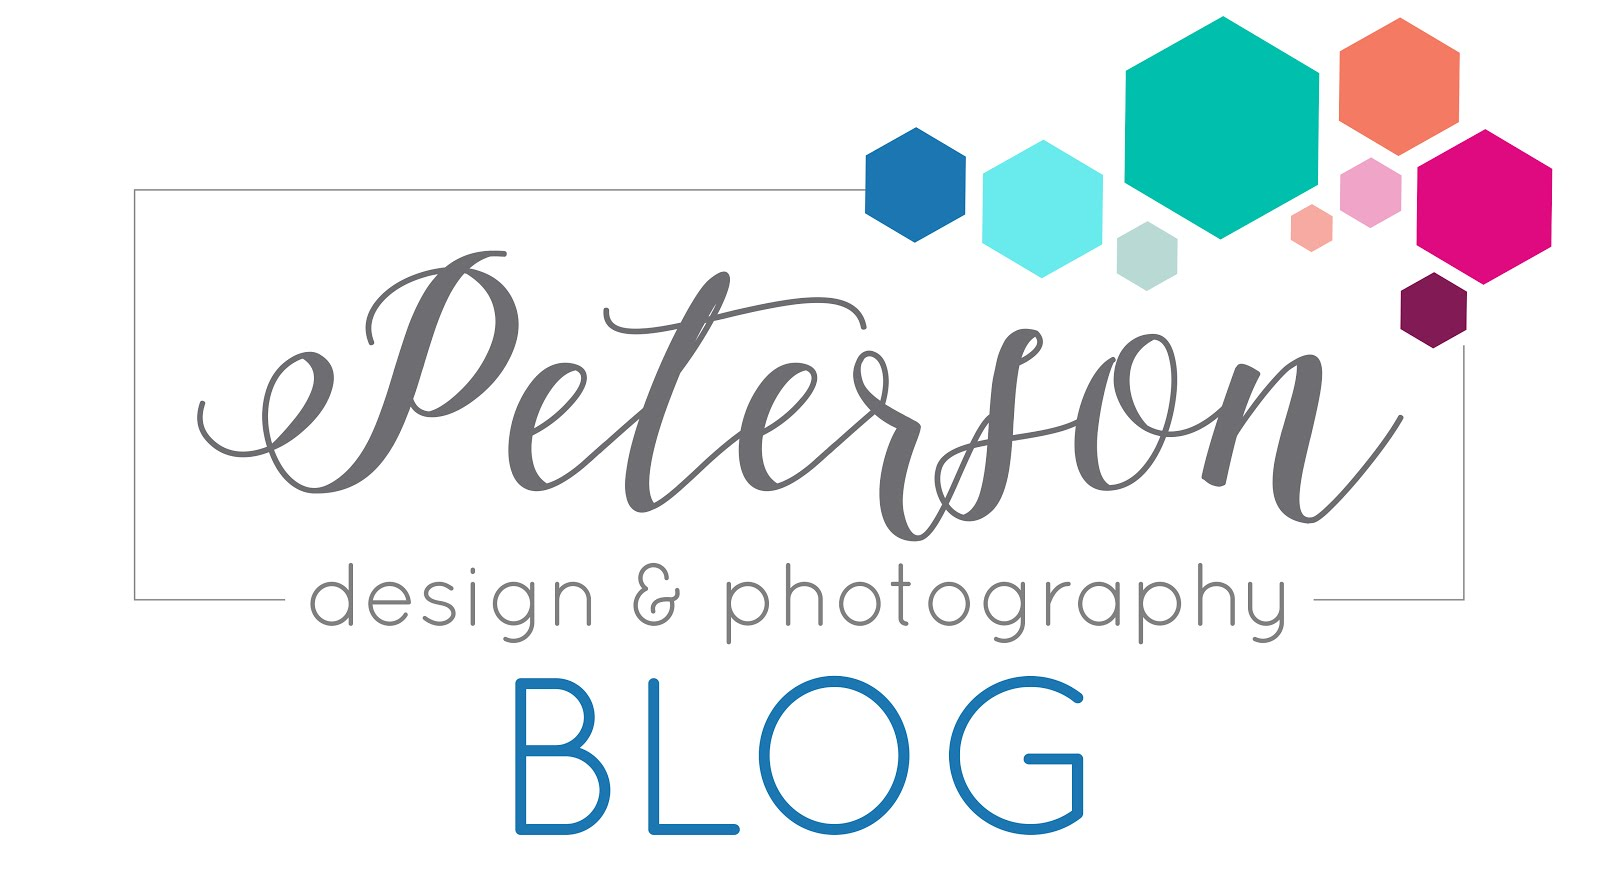 Peterson Design and Photography